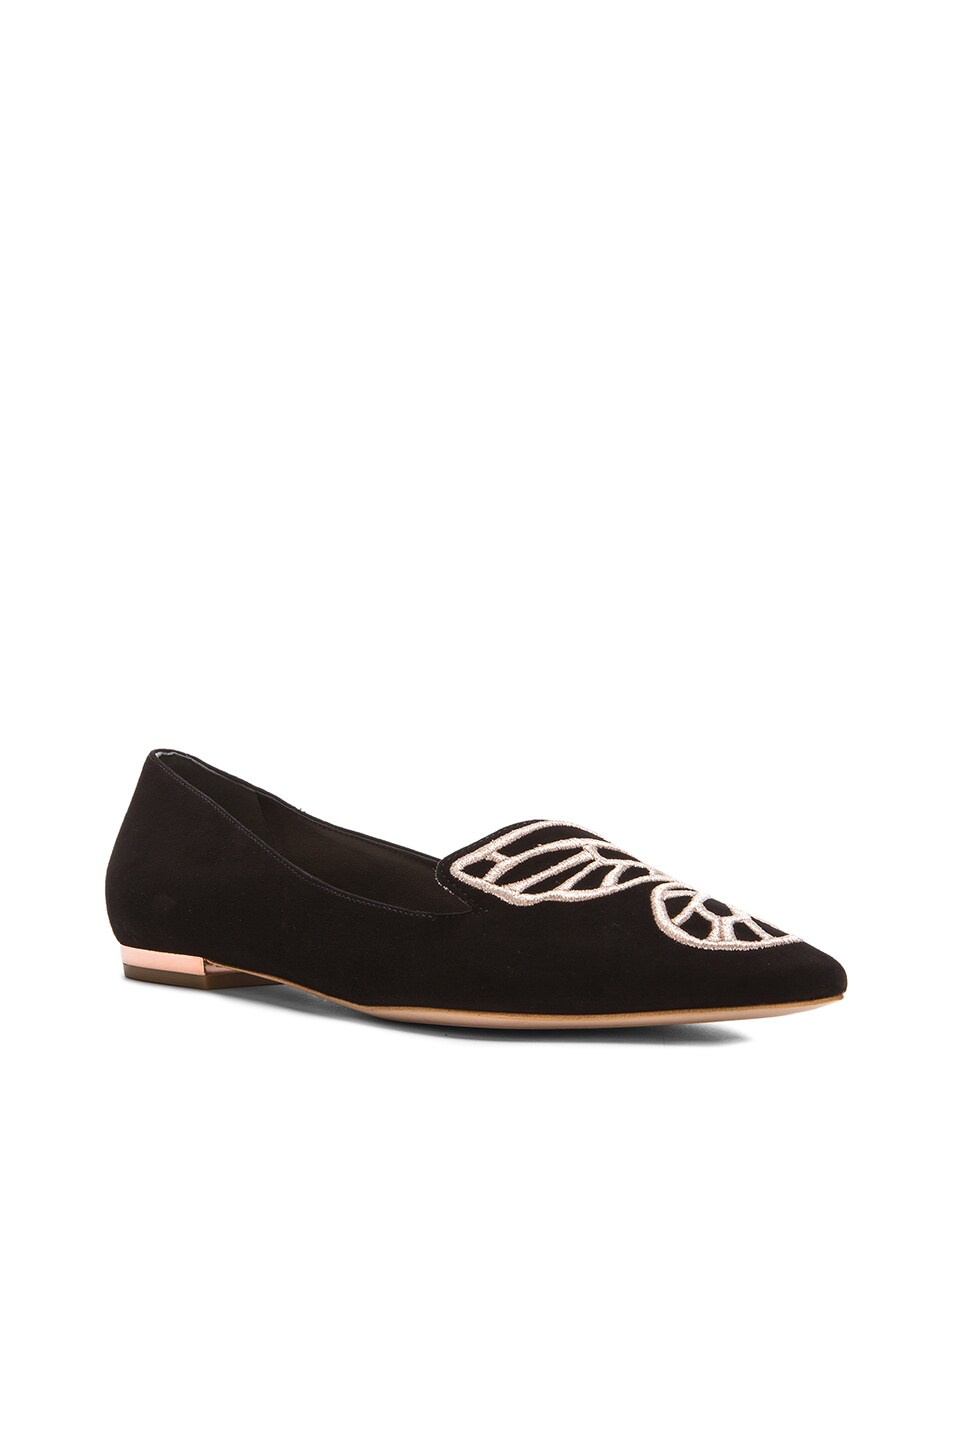 Image 3 of Sophia Webster Bibi Butterfly Suede Flats in Black & Rose Gold